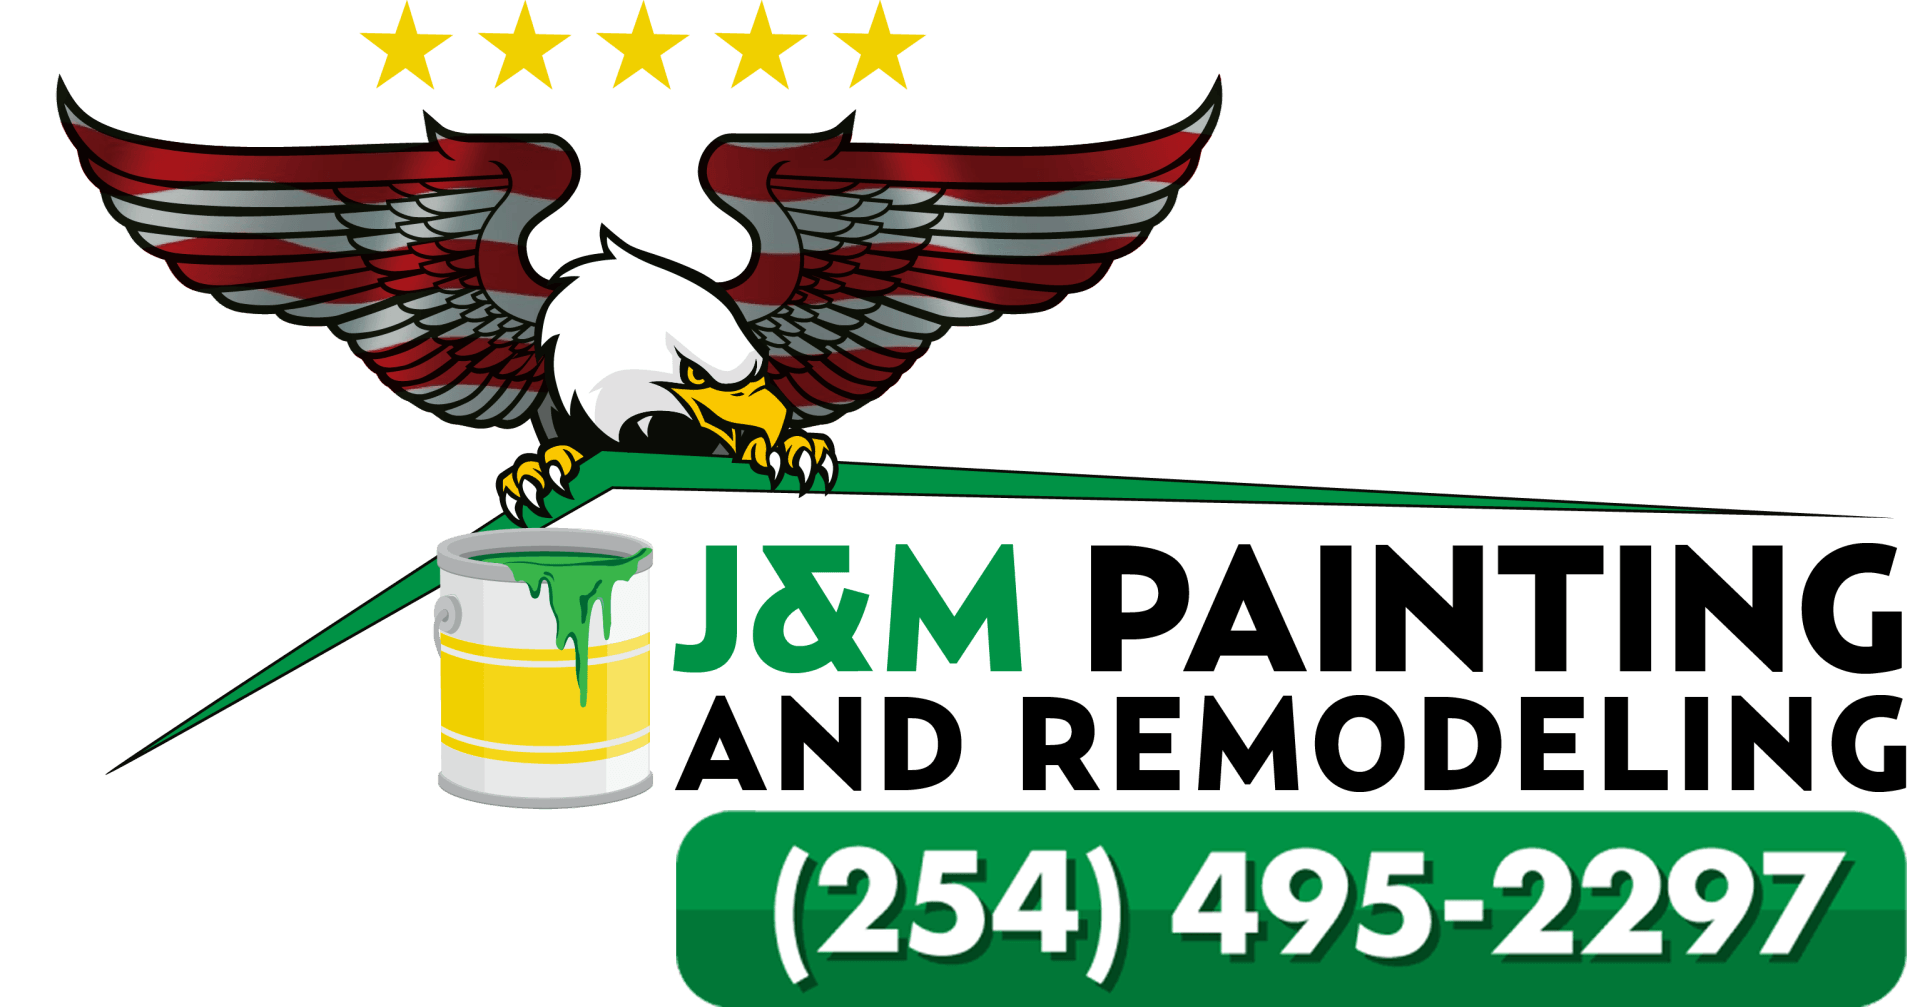 Home Remodeling | Waco, TX | J&M Painting and Remodeling